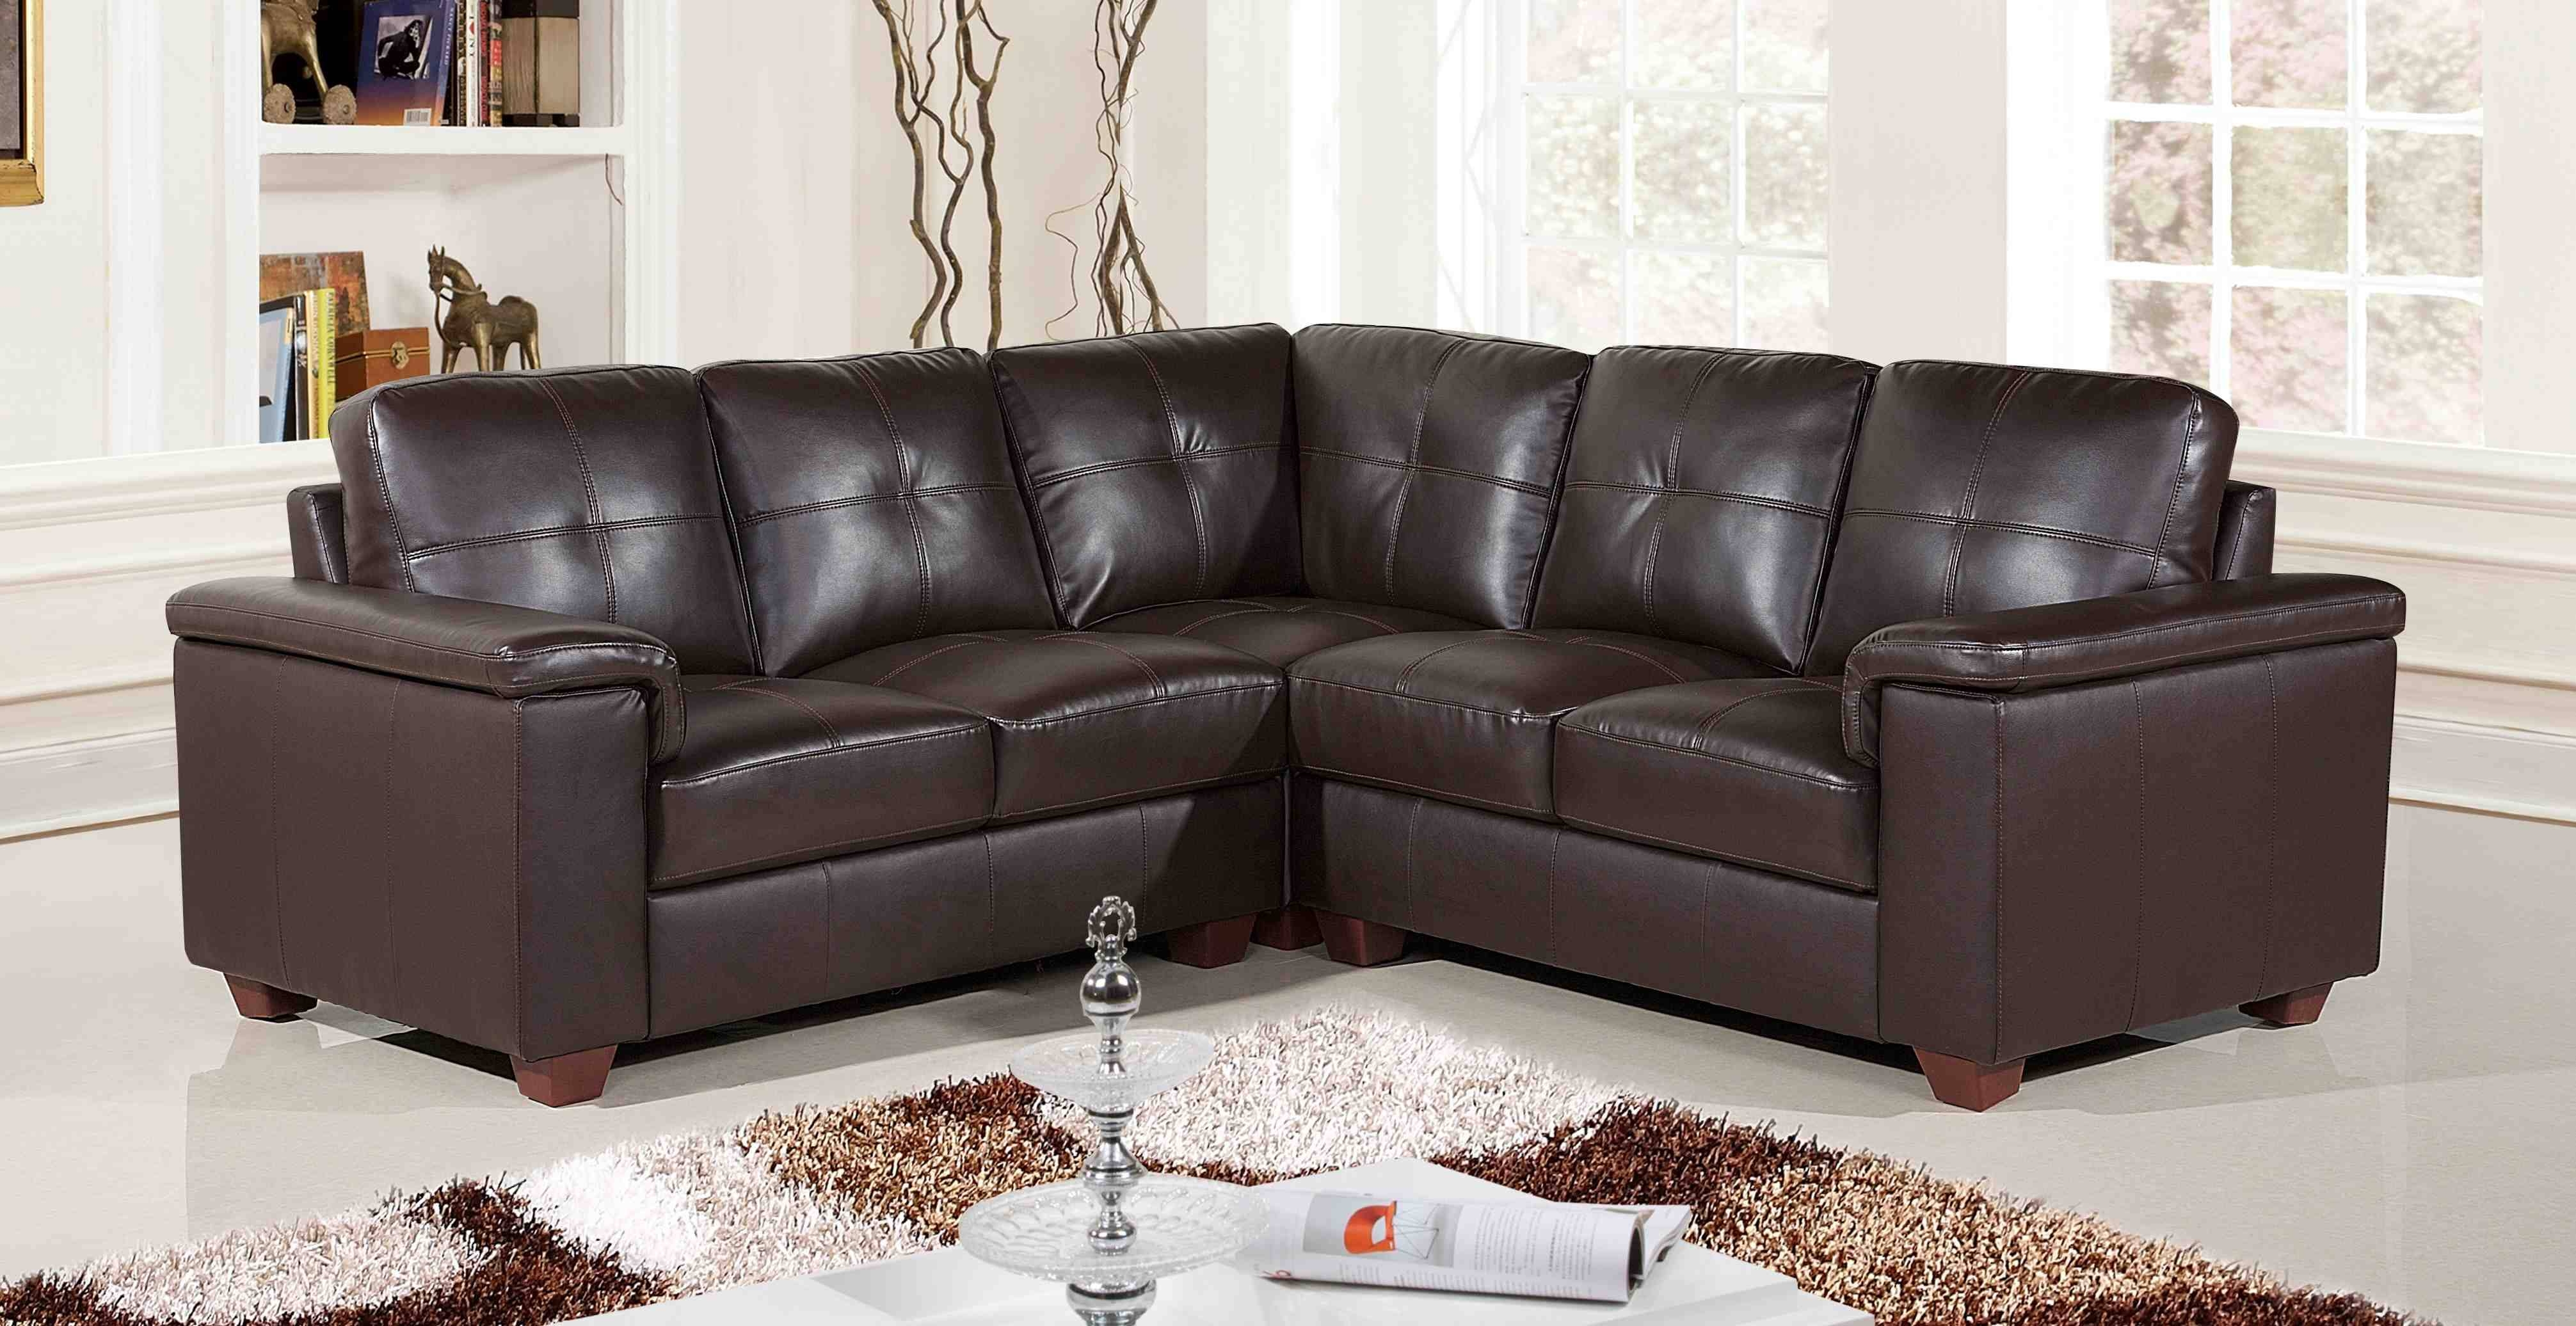 Living Room Stunning Western Rustic Rancher Leather And Fabric L in Leather and Cloth Sofa (Image 19 of 25)